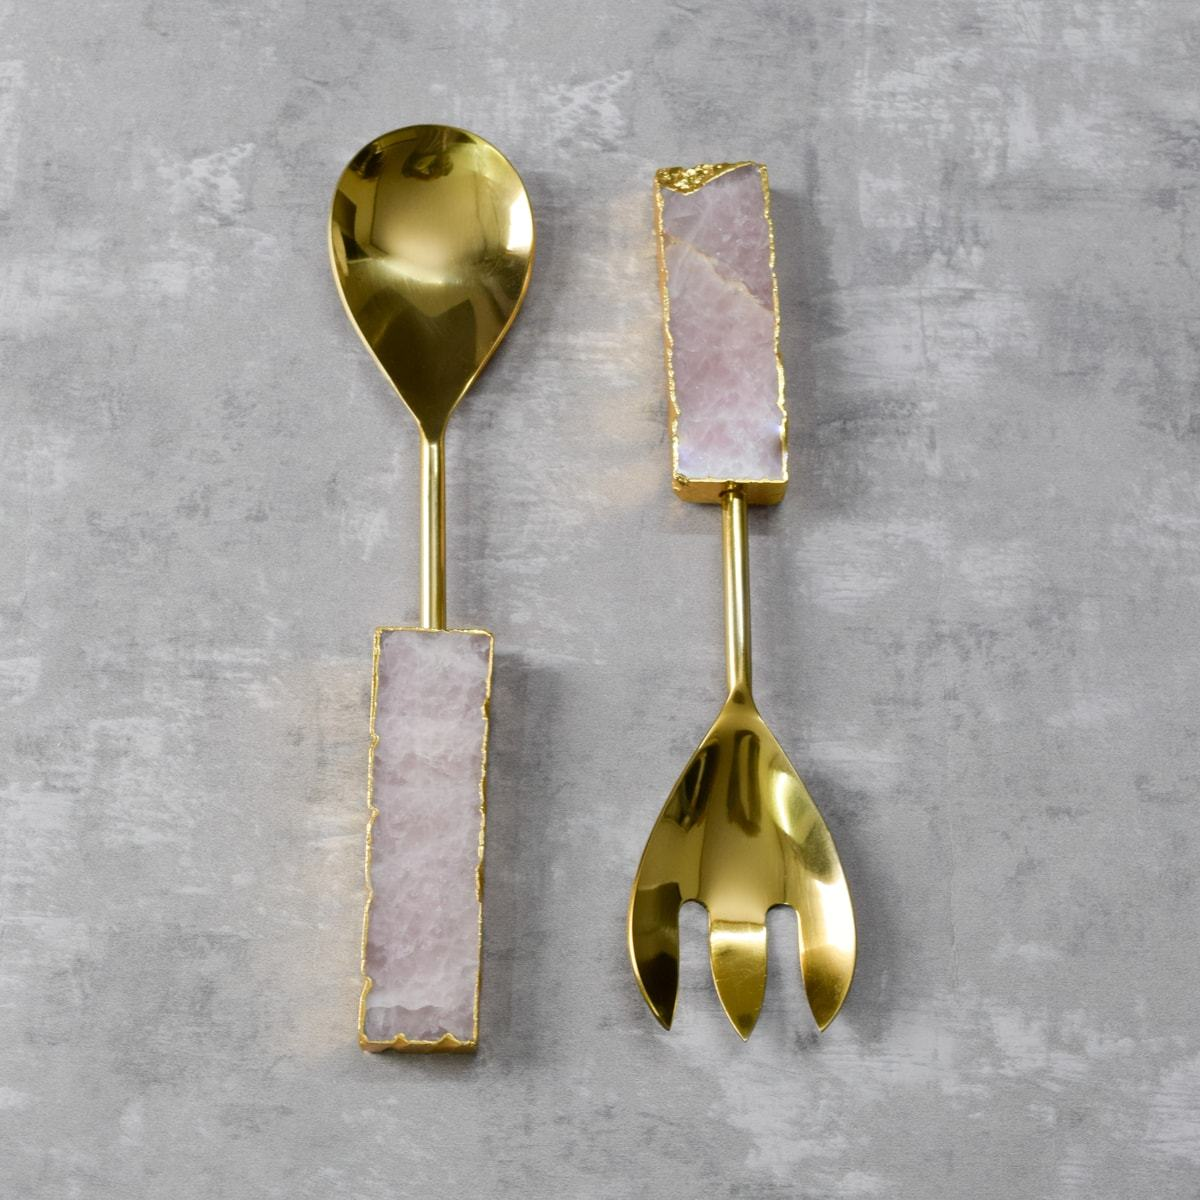 Daniel Rose Quartz Serving Spoon and Spork Set